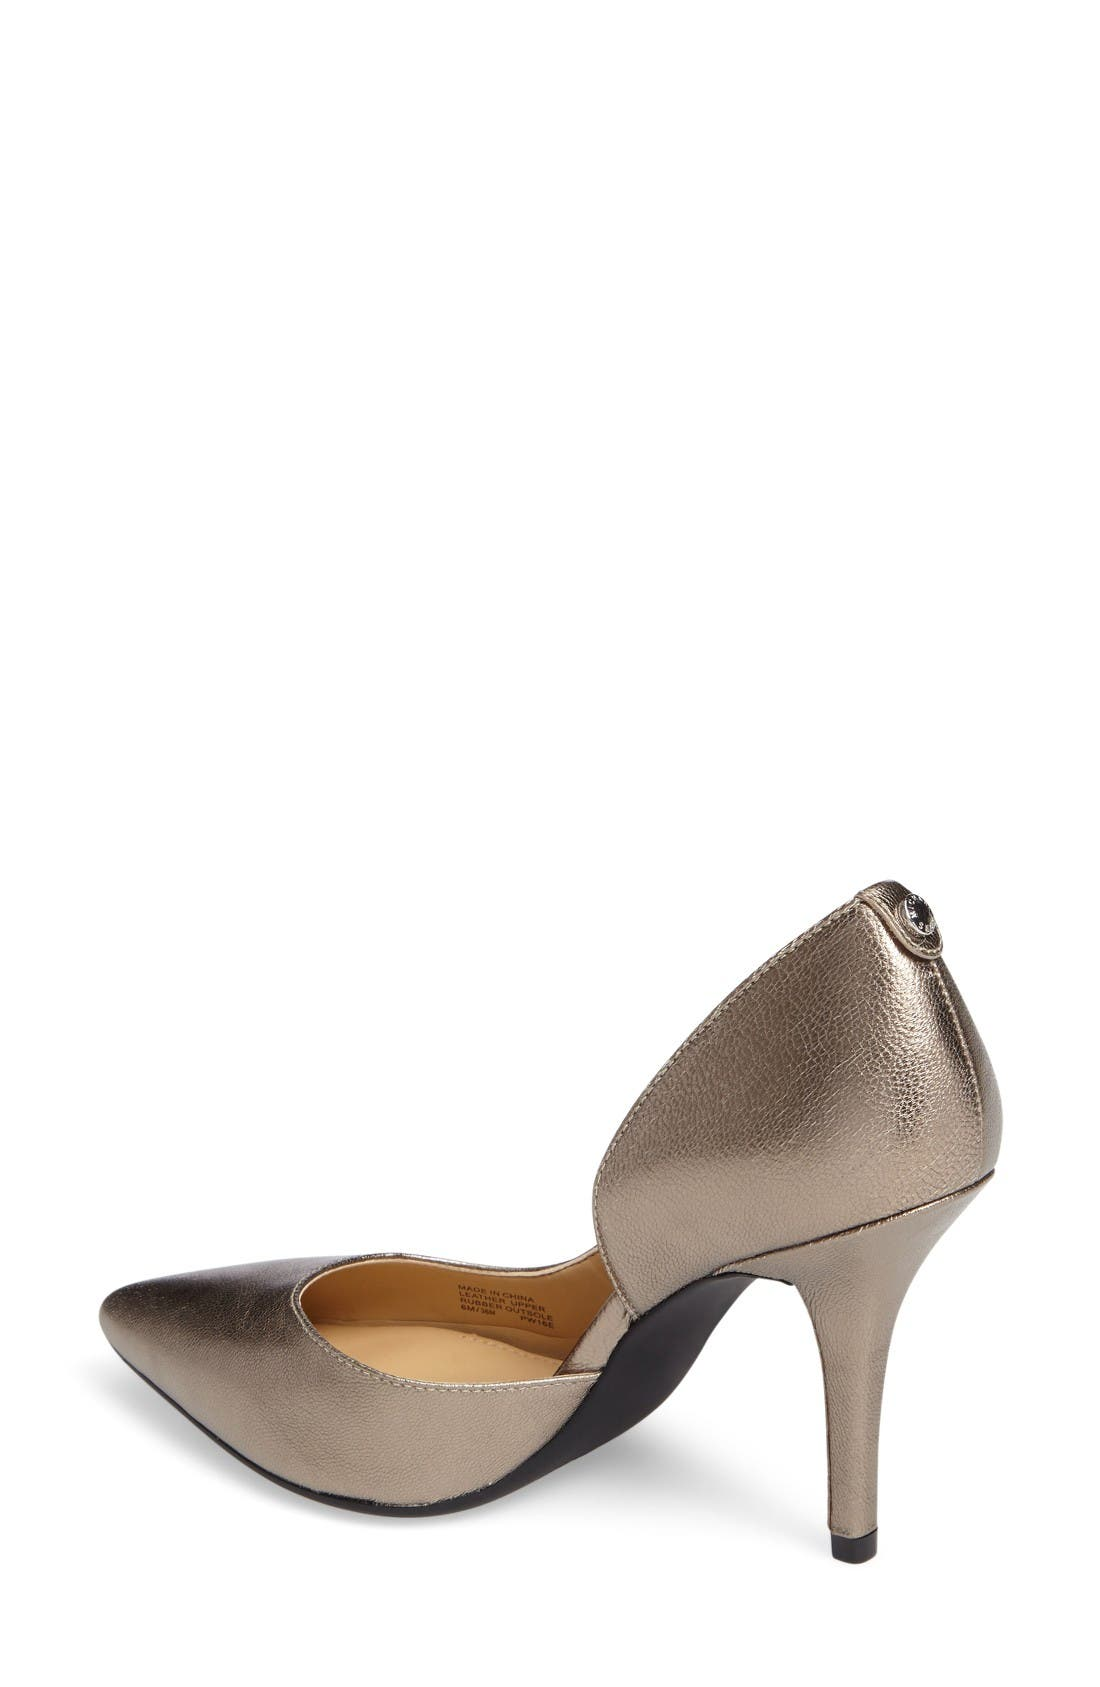 Nathalie Demi d'Orsay Pointy Toe Pump,                             Alternate thumbnail 2, color,                             Nickel